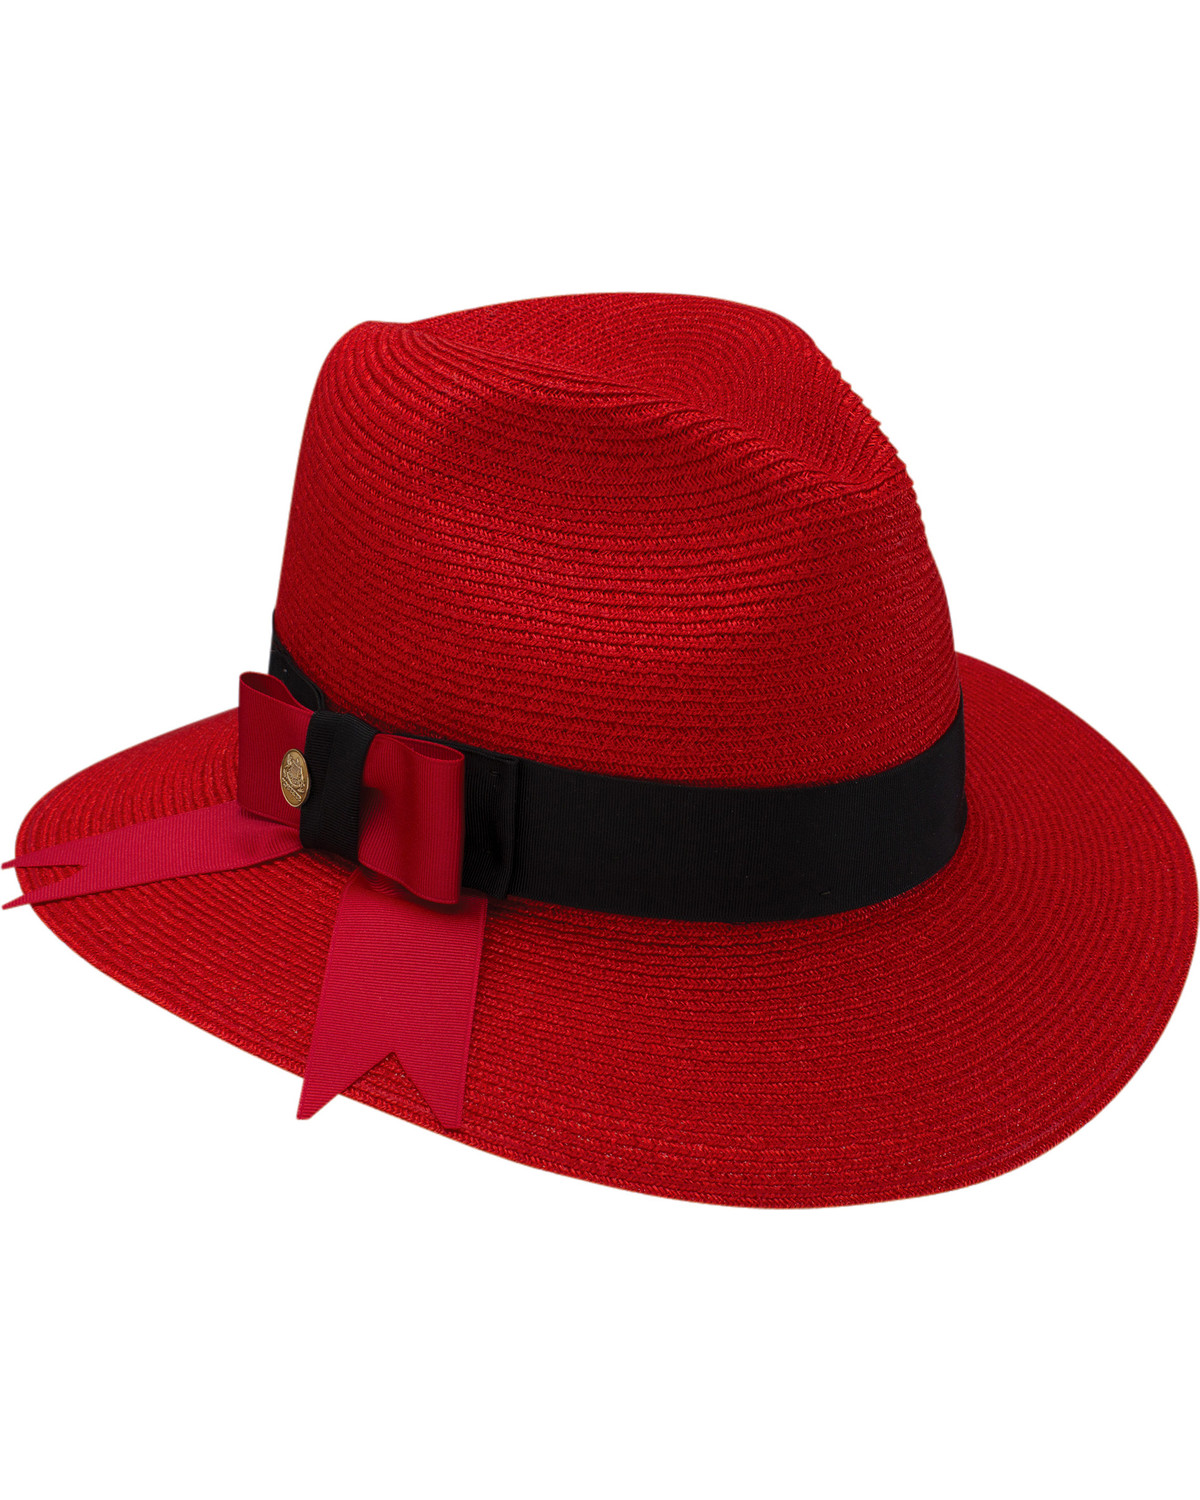 Stetson Women\u0027s Cat\u0027s Meow Hemp Braid Fedora Hat , Red, hi-res | Boot Barn